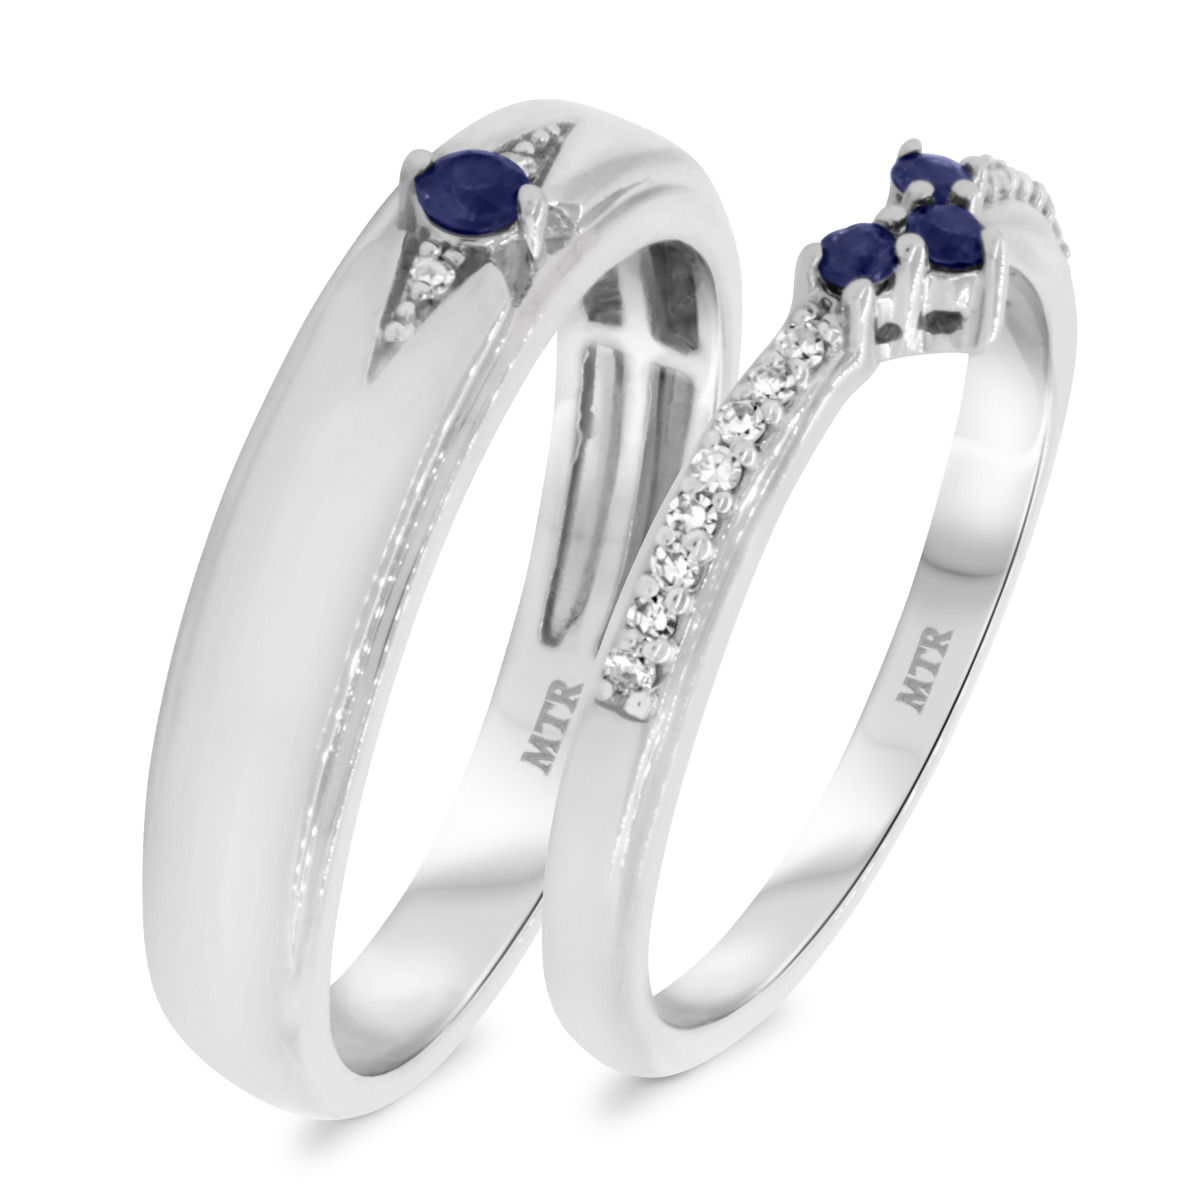 1/4 Carat T.W. Sapphire Matching Wedding Band Set 14K White Gold